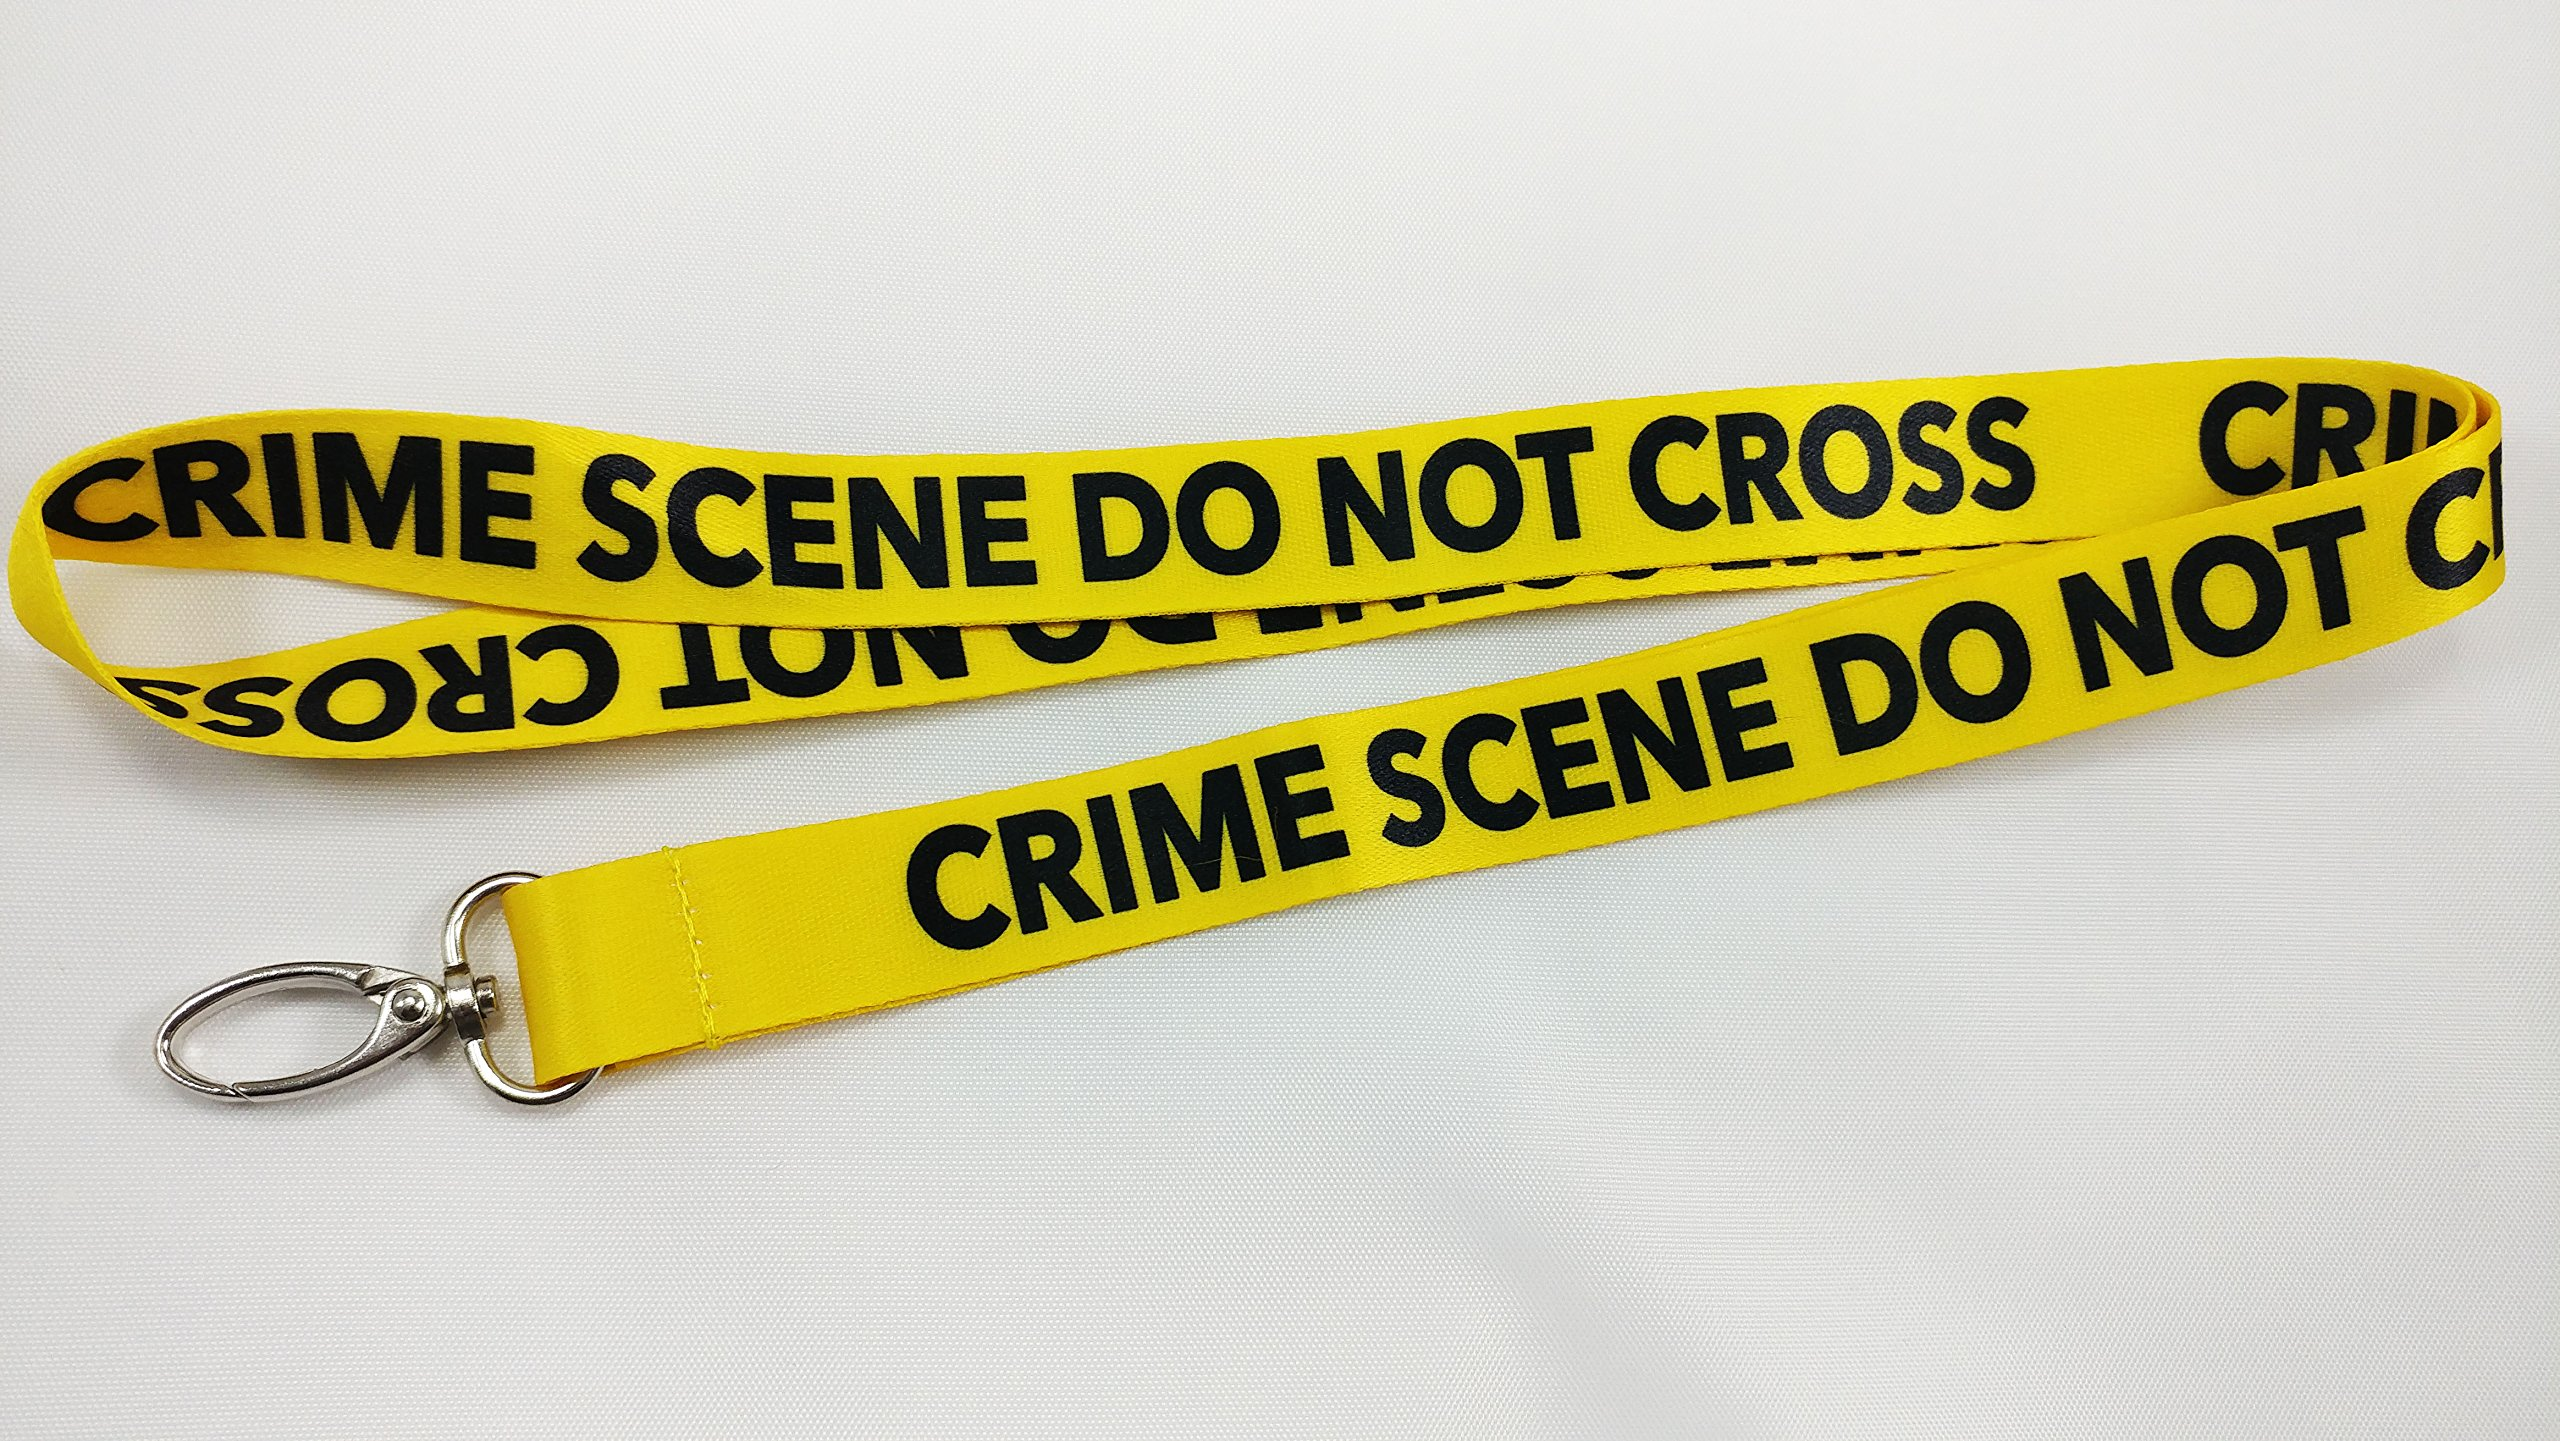 Crime Scene Do Not Cross Lanyard with clip for keys or id badges. Great for work id badge, school id badge, car keys, house keys. Perfect for CSI fans, forensic students. (10)